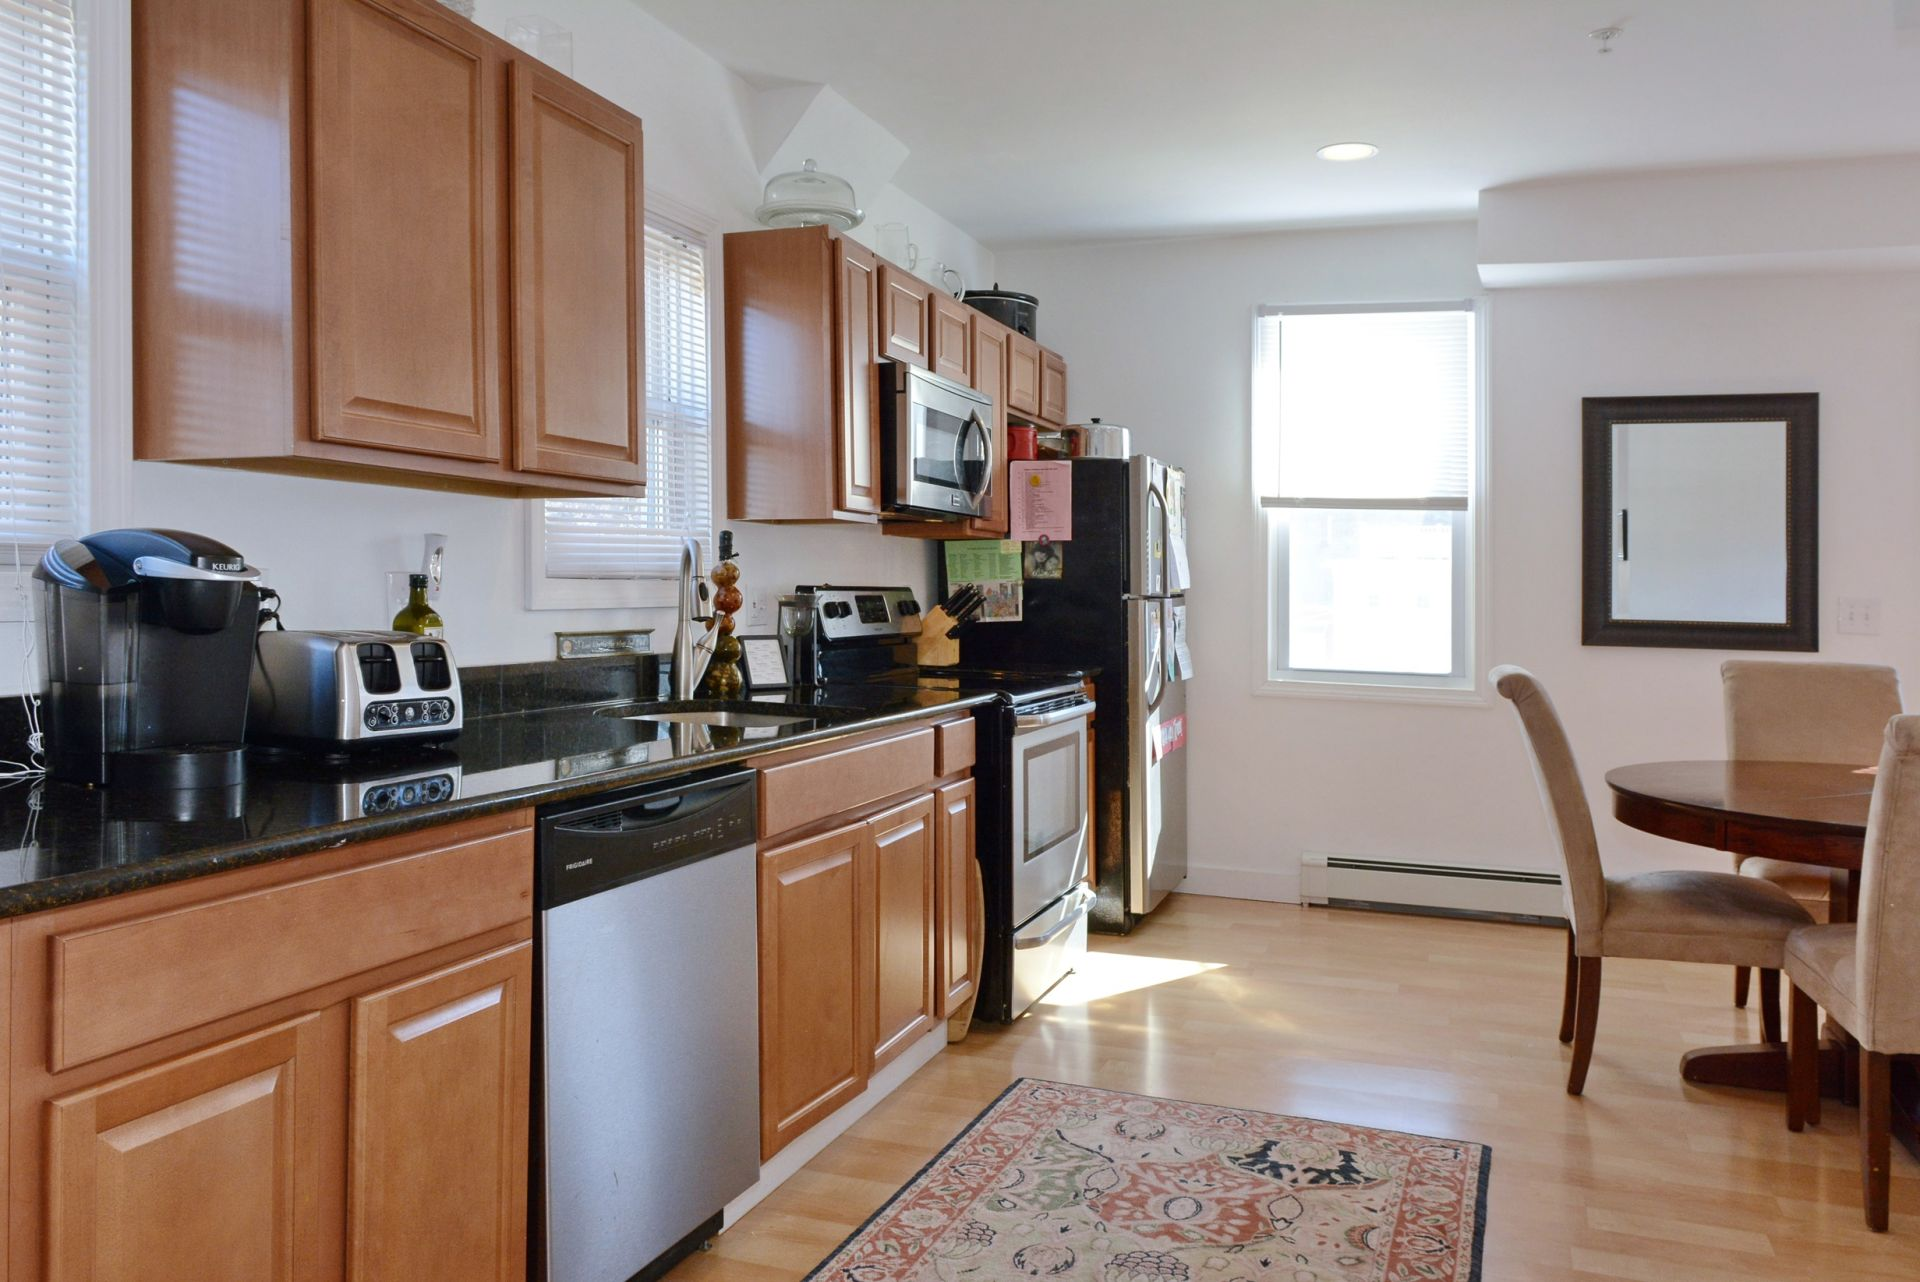 For Sale: 3BR Townhouse in Vibrant Amesbury!